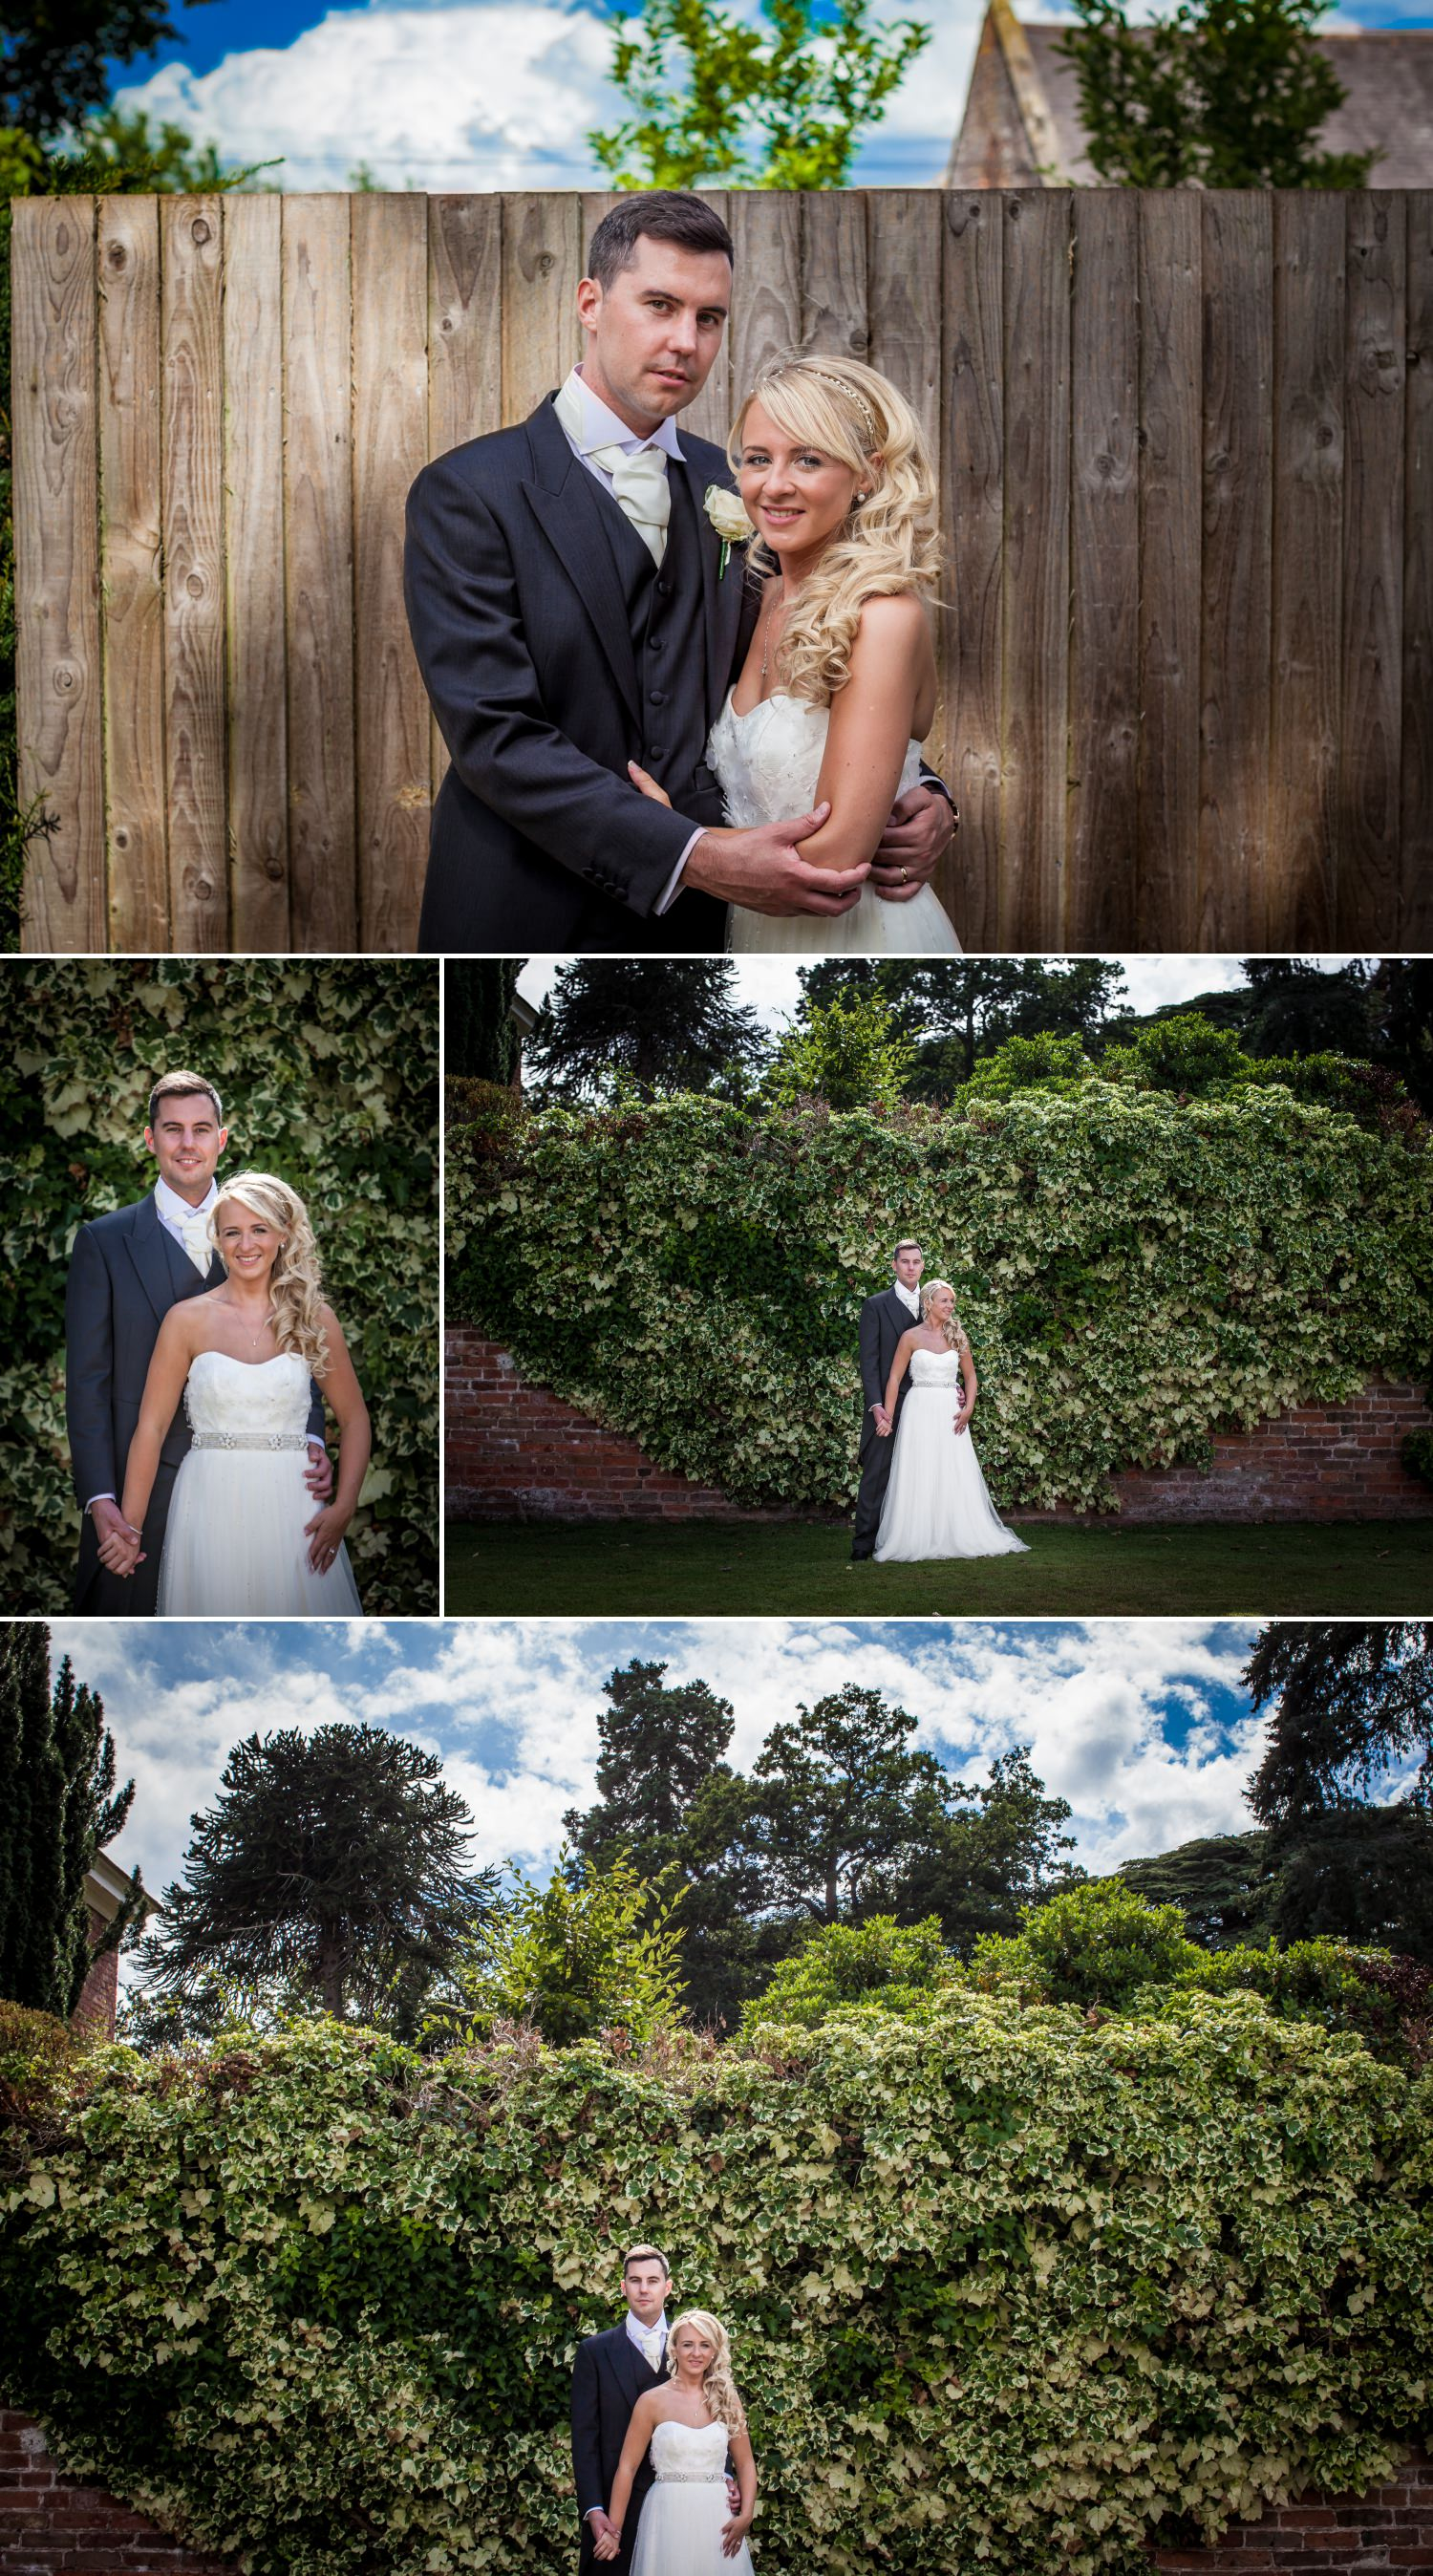 Wedding Photography portraits of bride and groom at Iscoyd Park